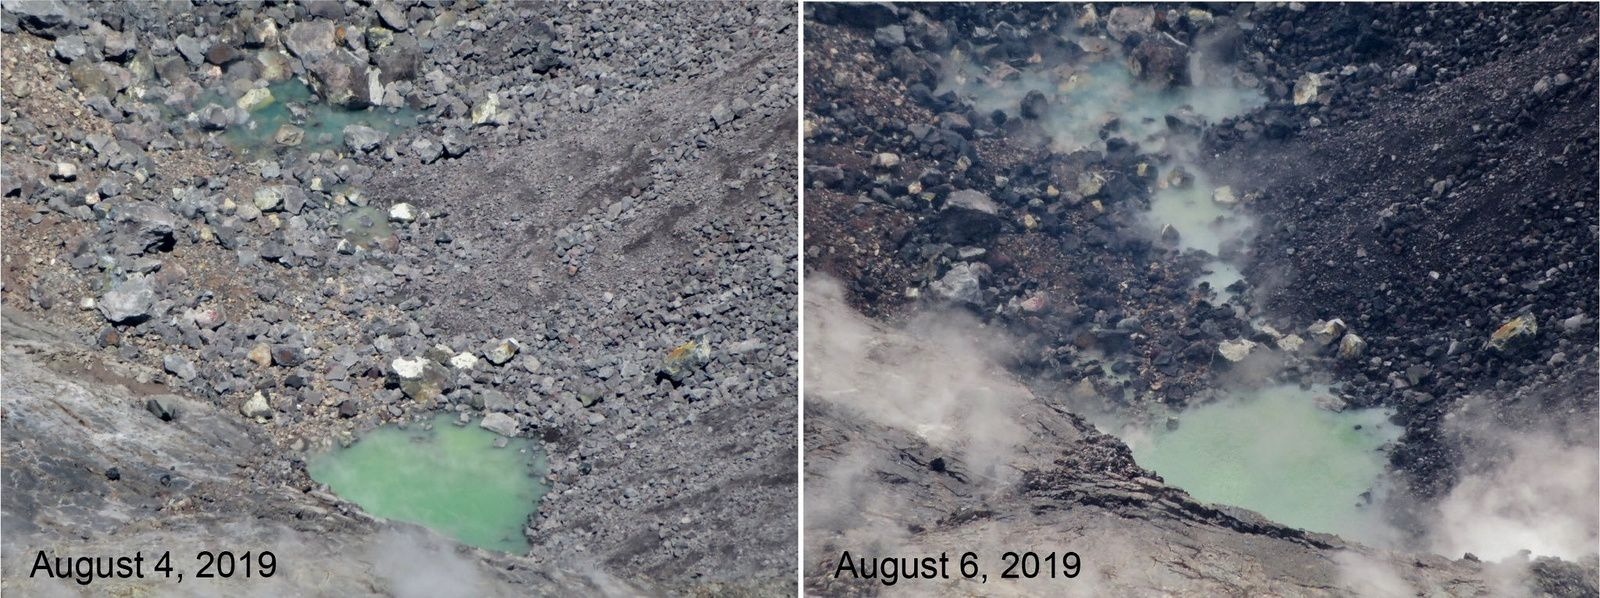 Kilauea - crater of Halema'uma'u- the growth of the pond between August 4 and 6, 2019 suggests a future crater lake formation - doc. Hawaii NPS